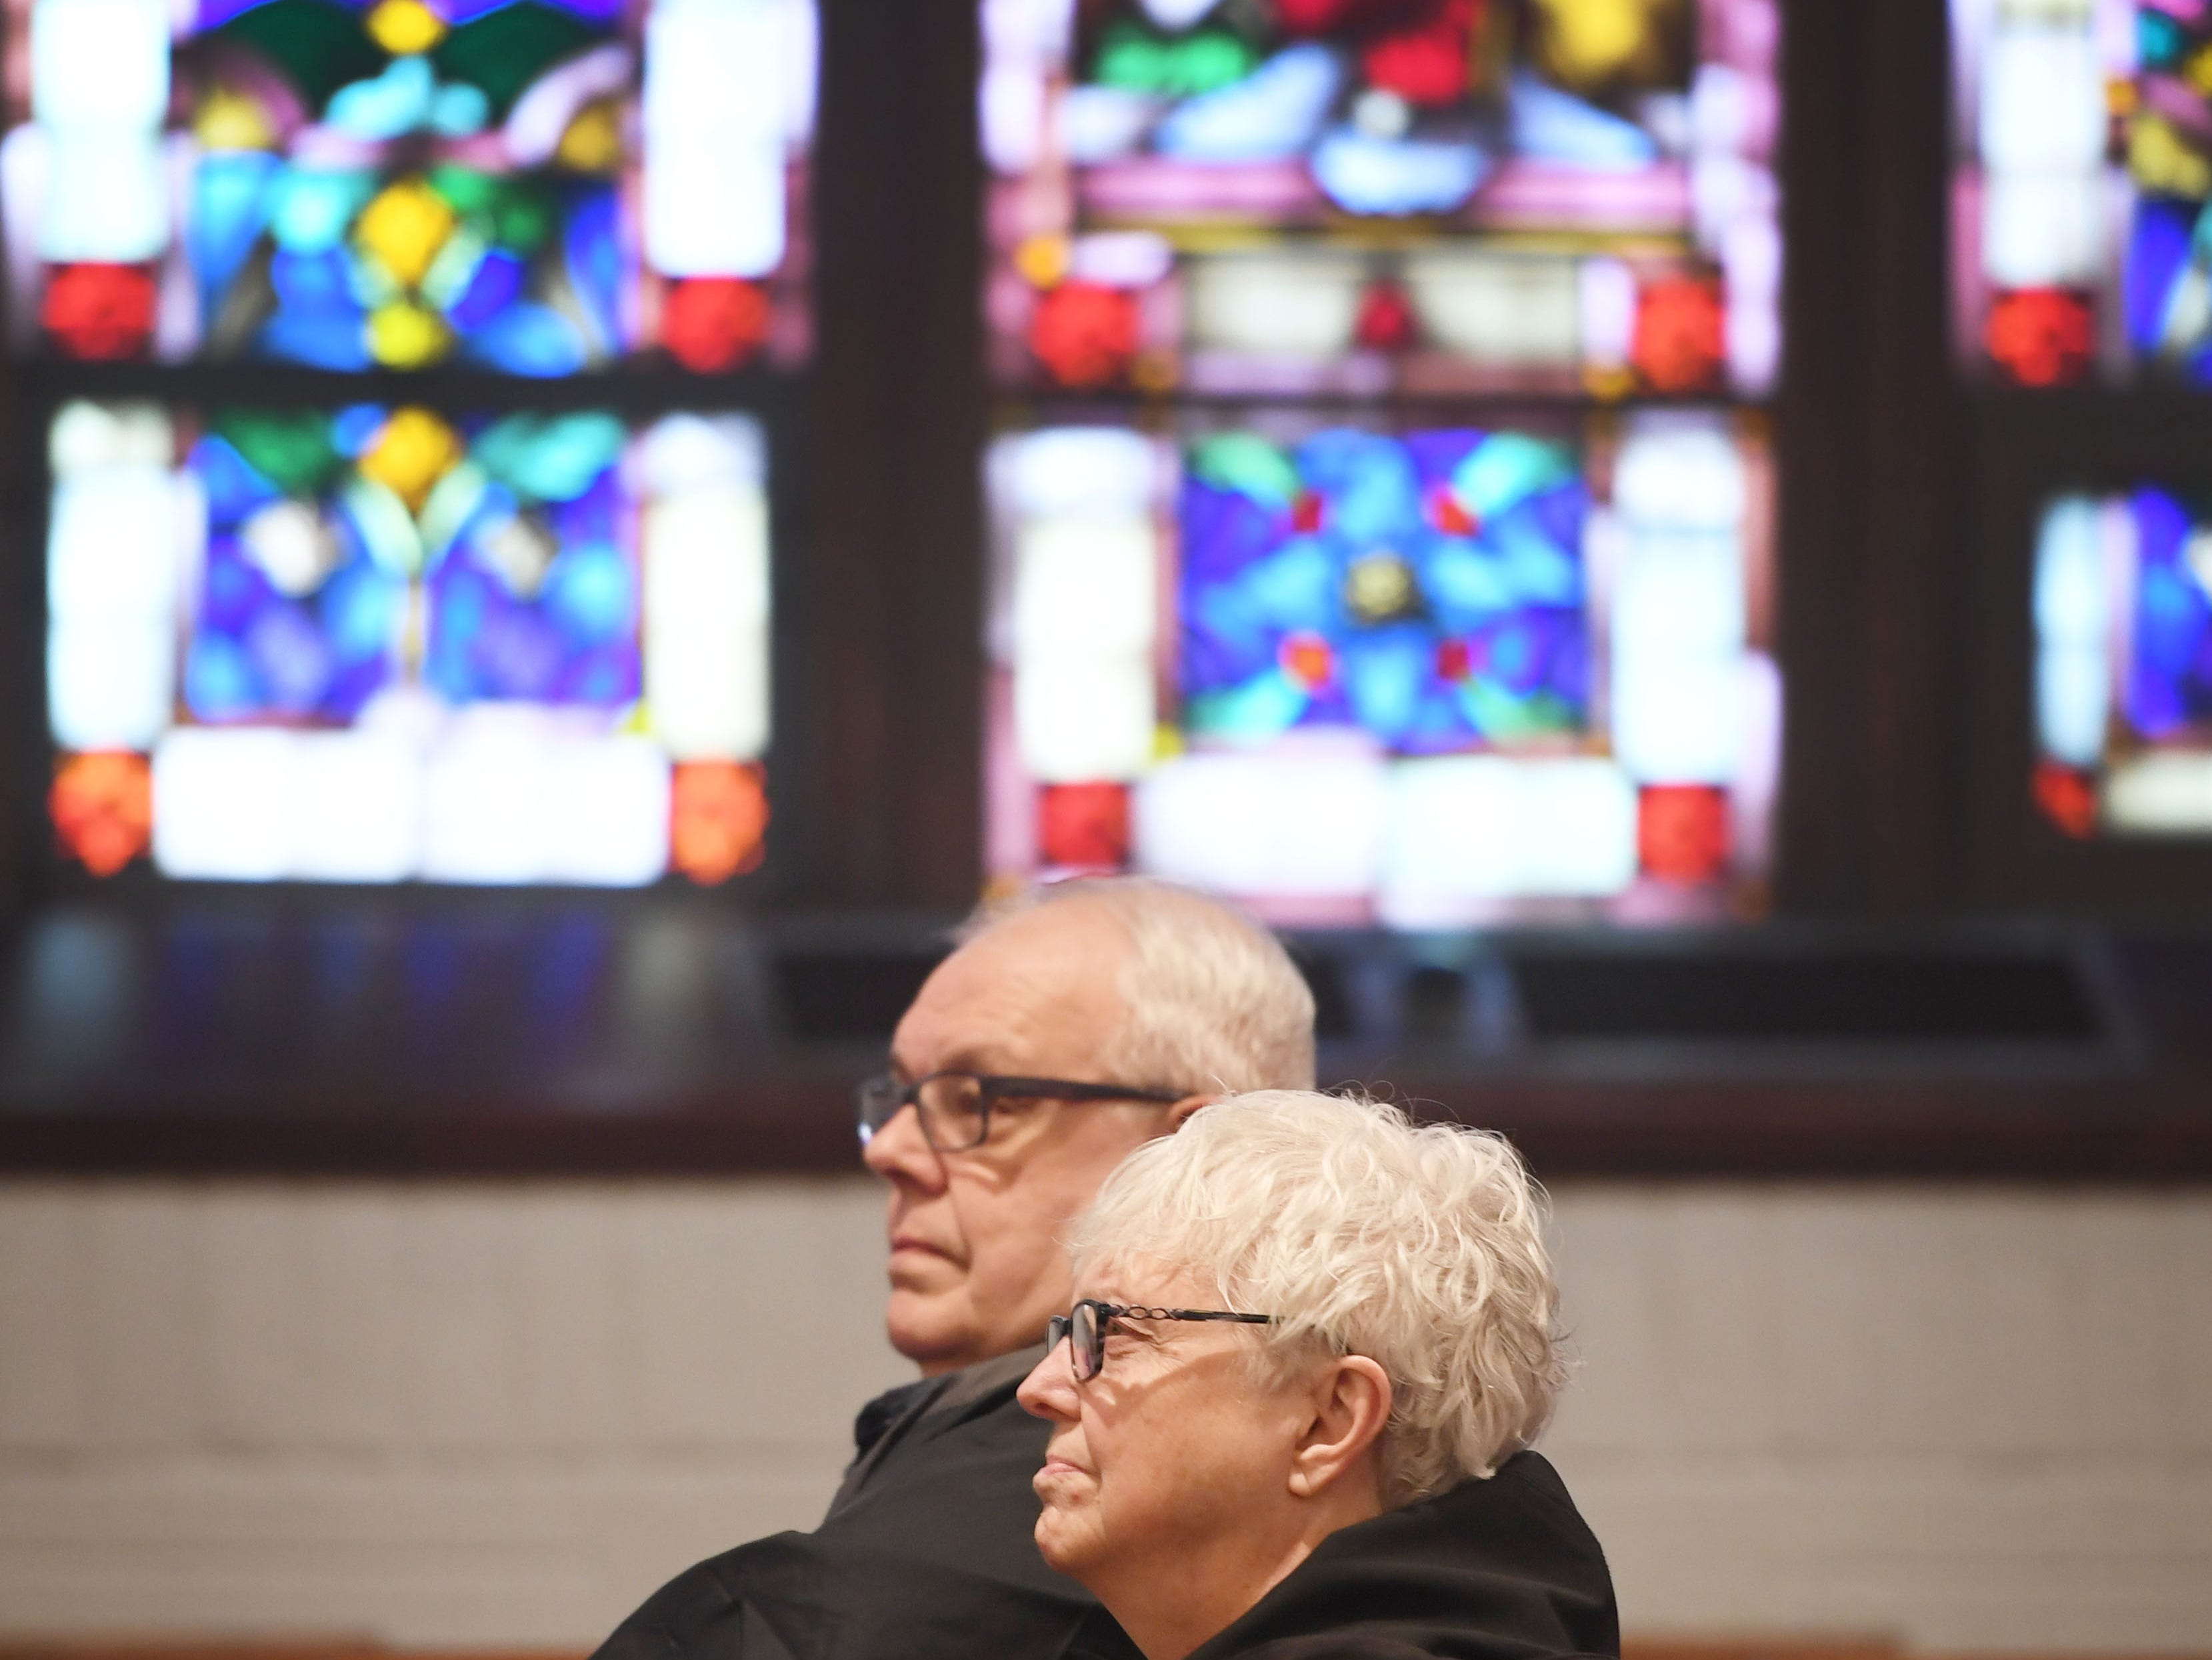 East Side Lutheran Church Wednesday, April 10, during noon service in Sioux Falls. The church turned 100 years old this year.